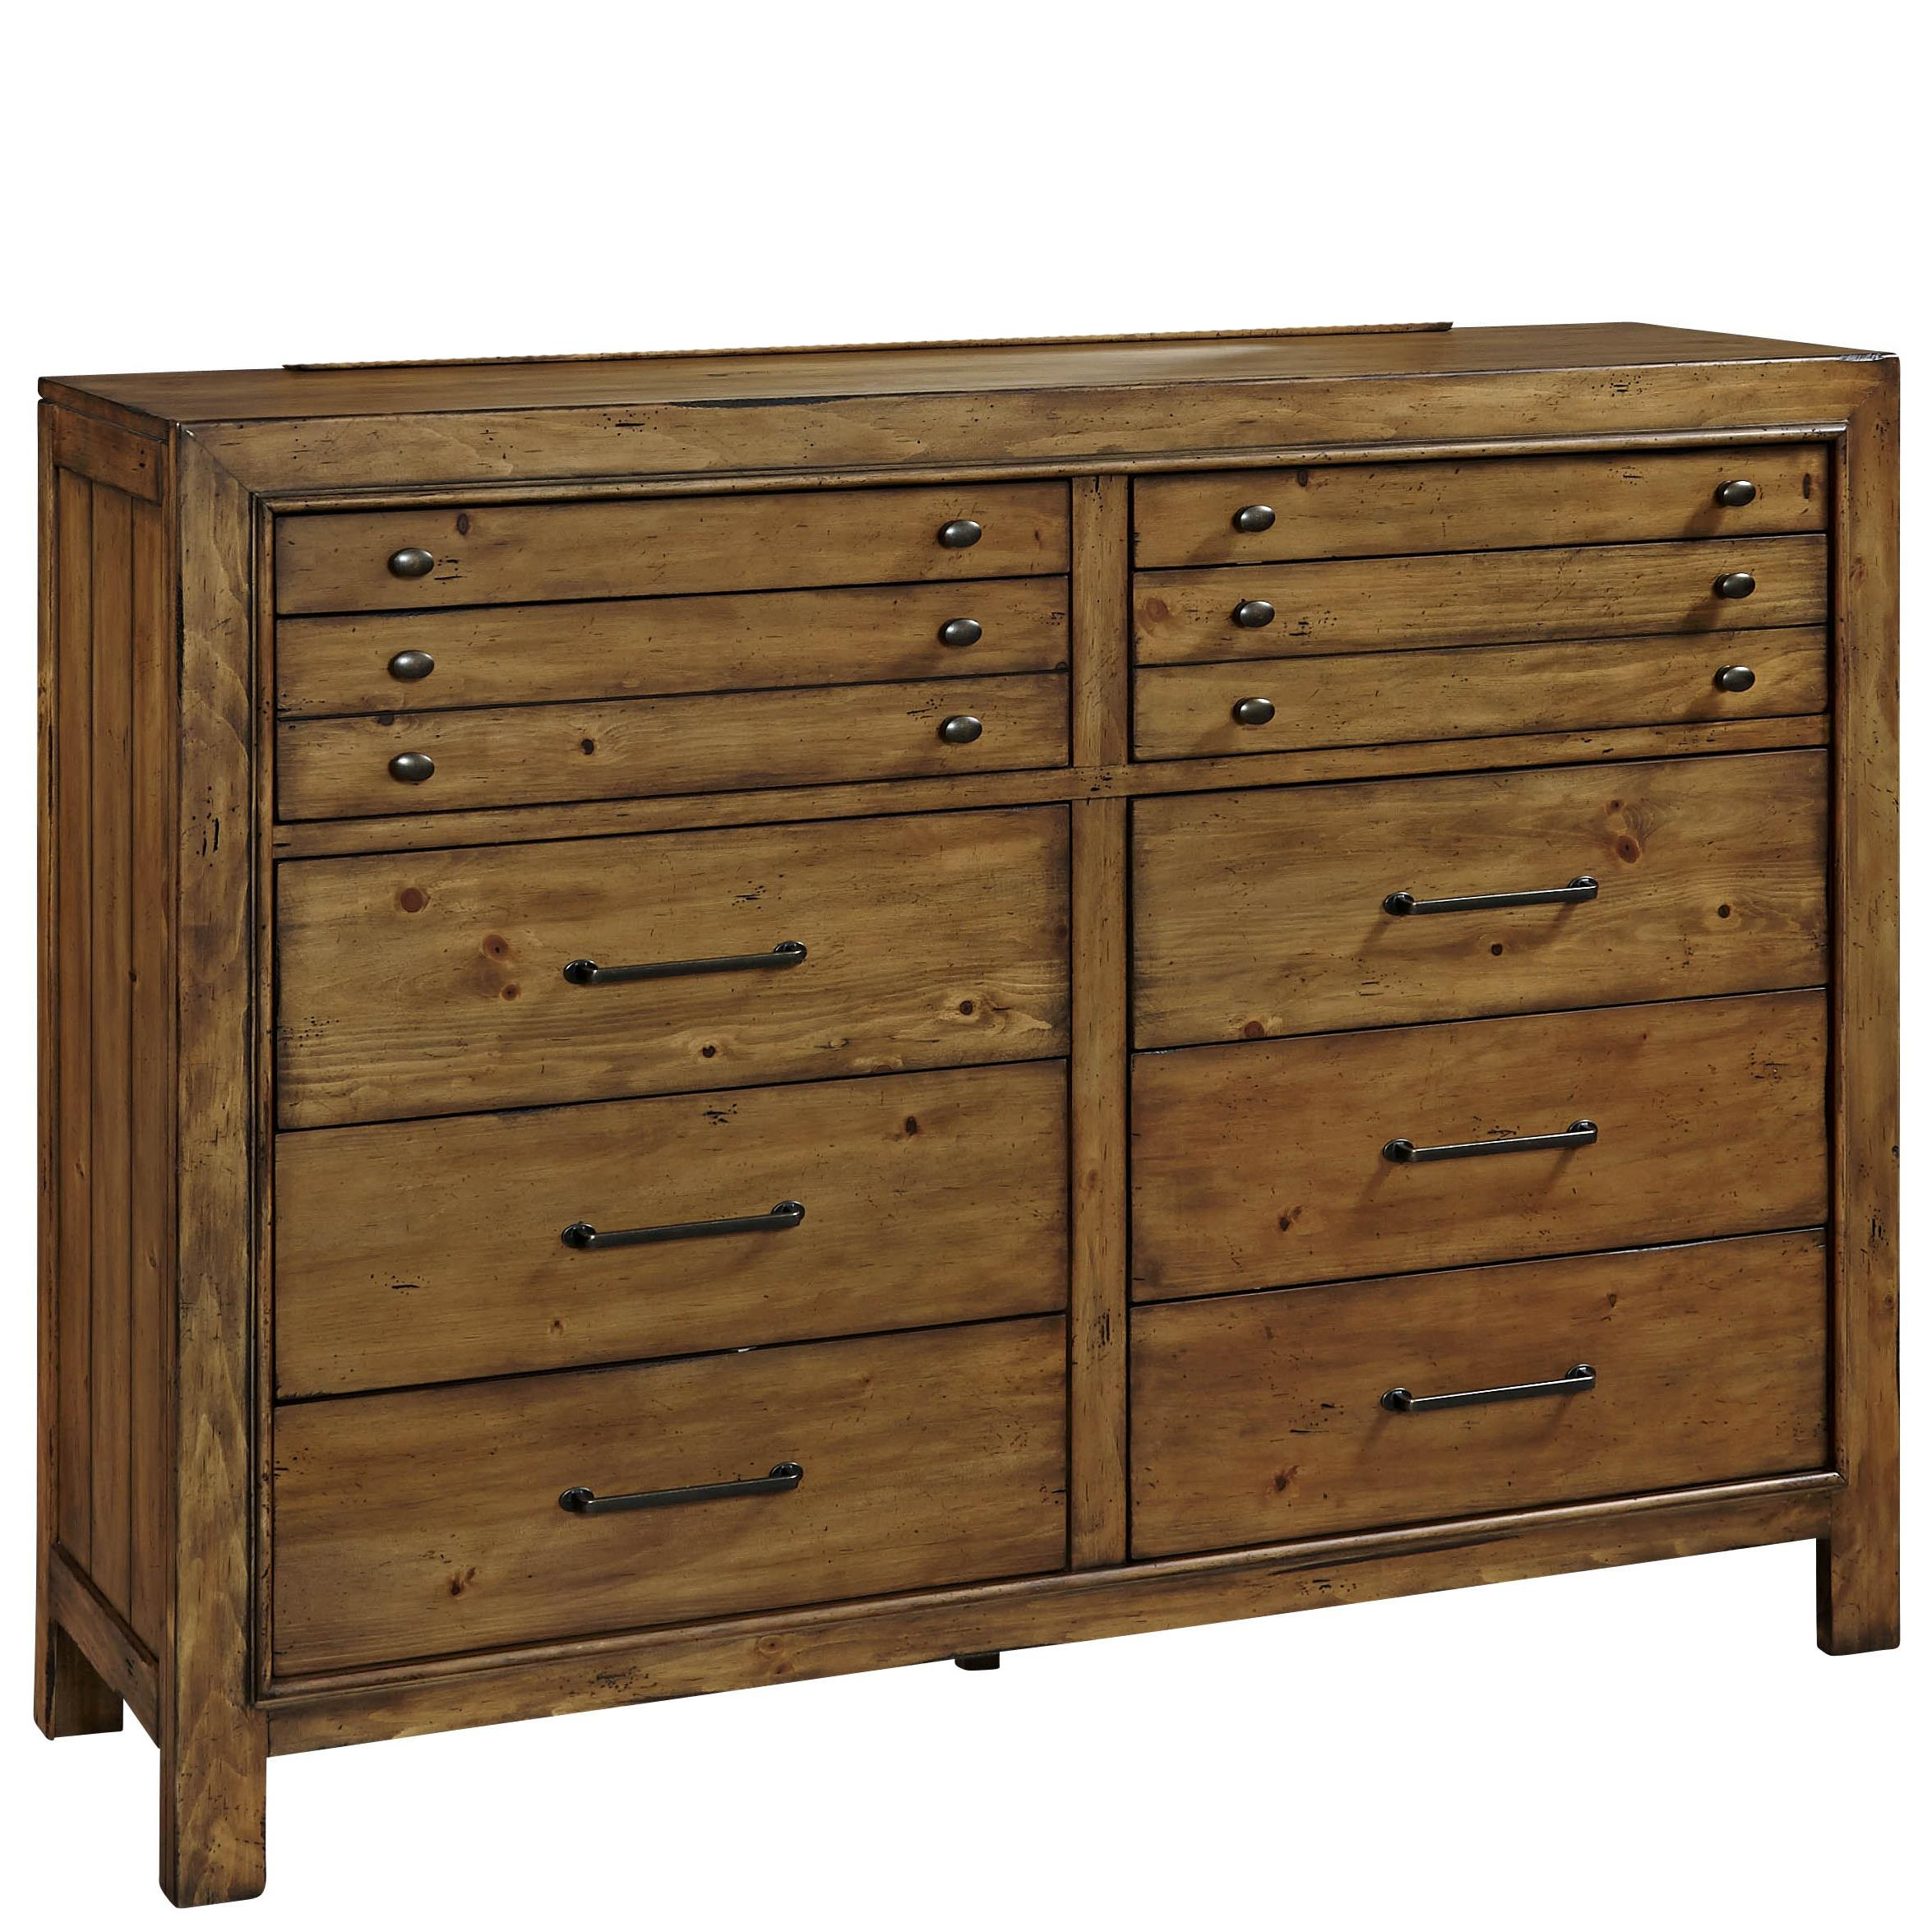 Broyhill Furniture Bethany Square 10 Drawer Chesser - Item Number: 4930-234